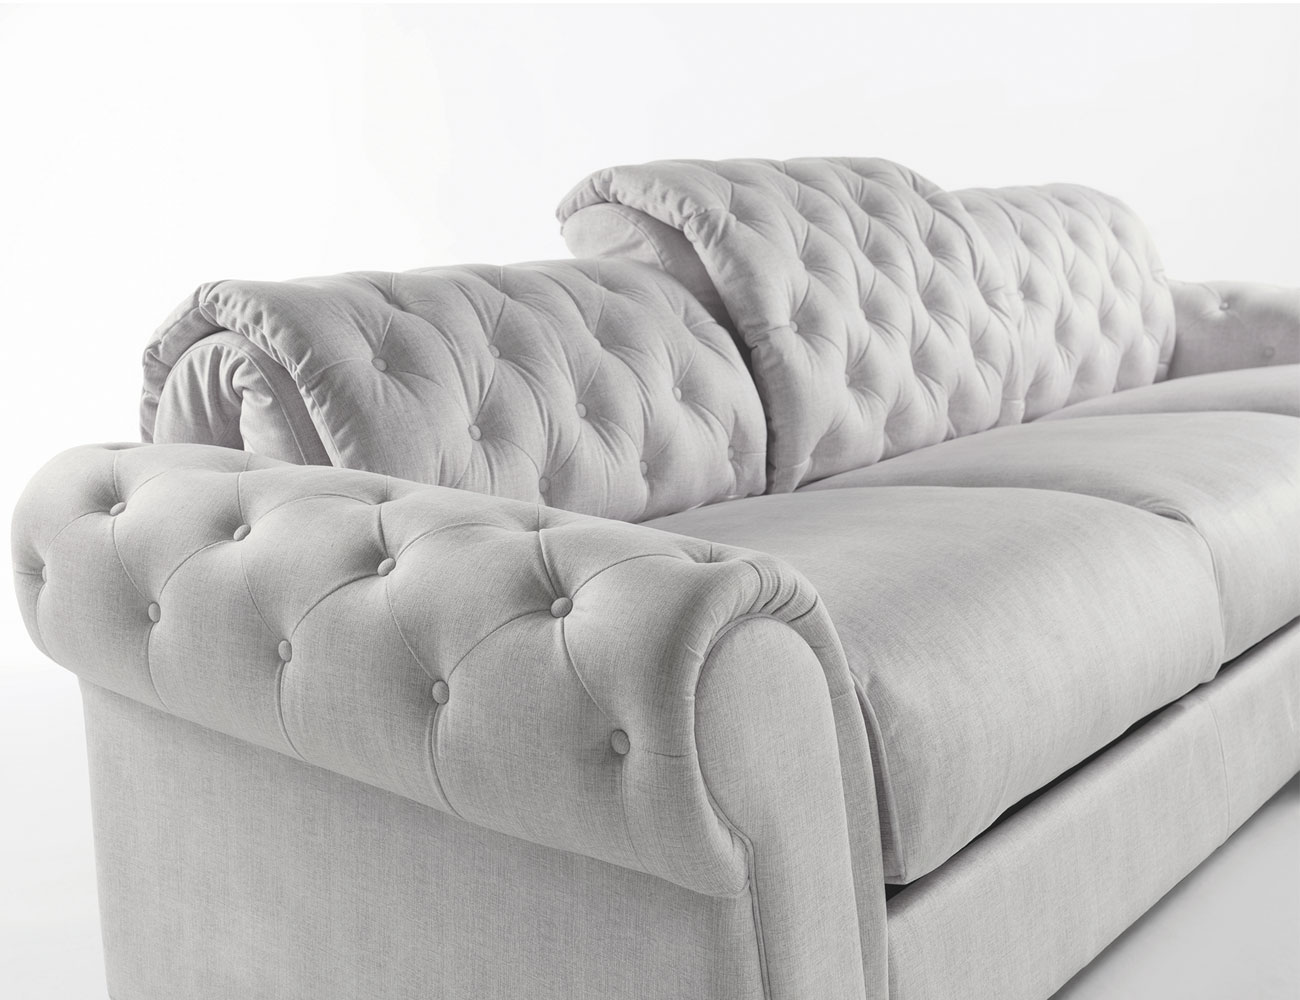 Sofa chaiselongue gran lujo decorativo capitone blanco tela 14